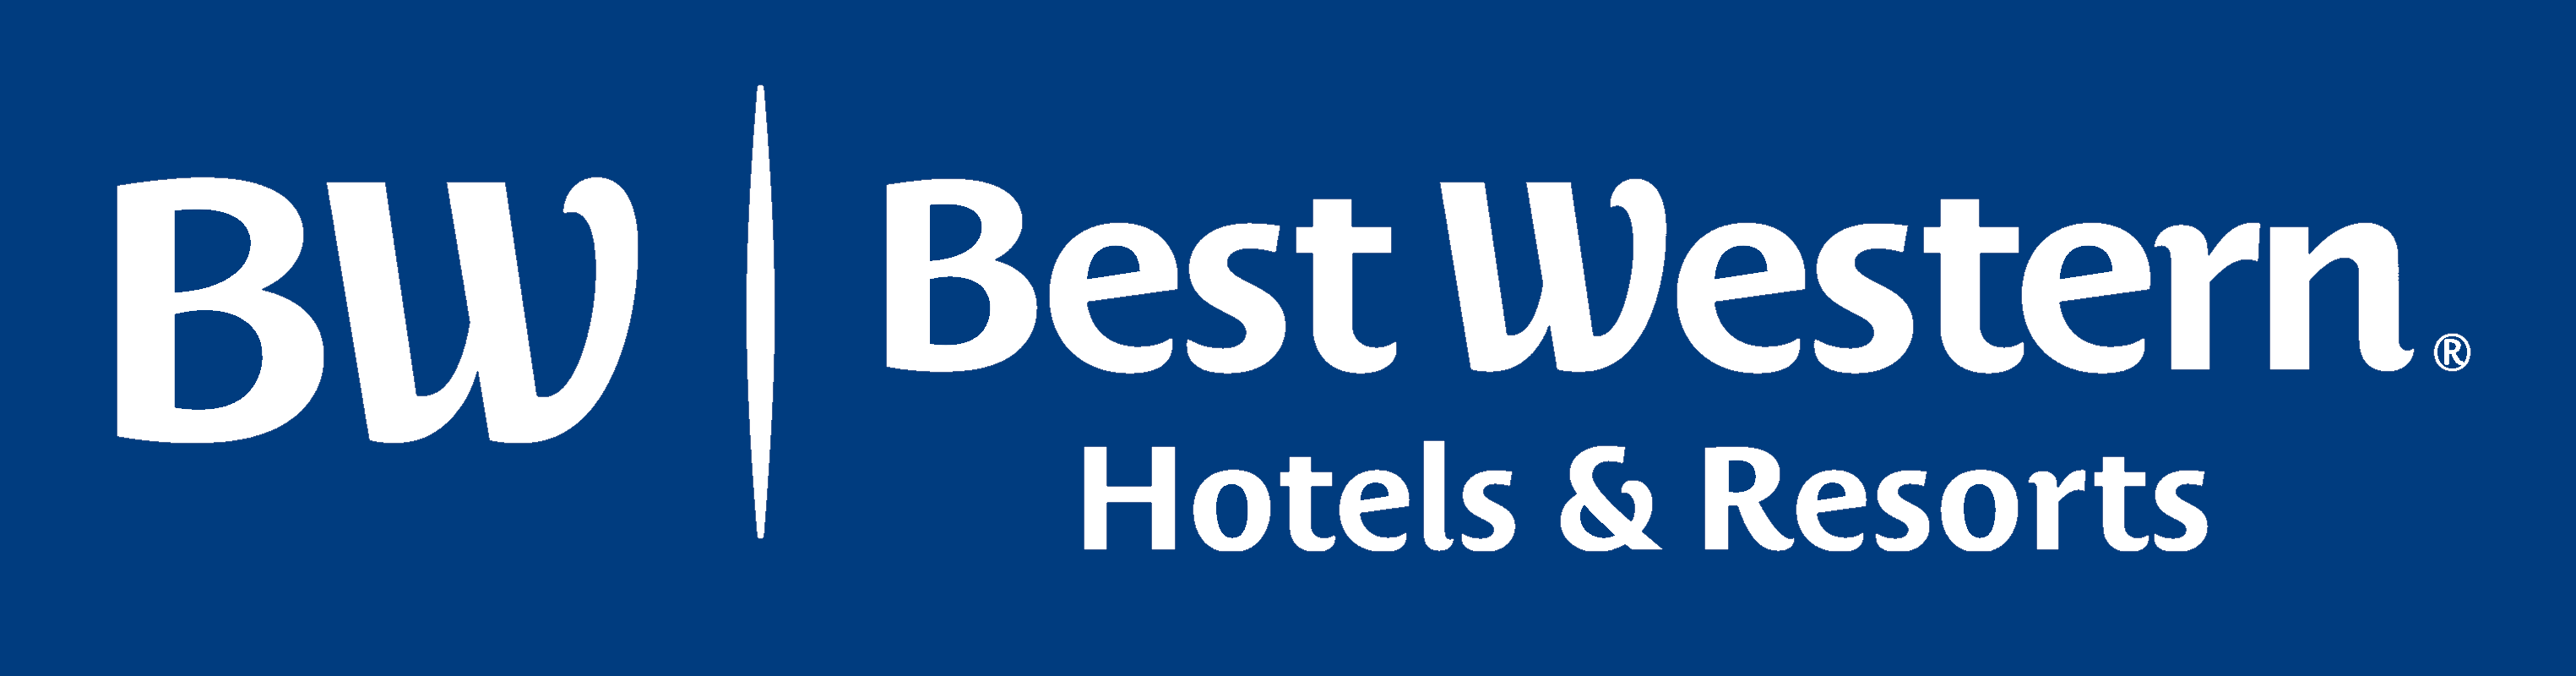 Best Western Coupons & Promo Codes